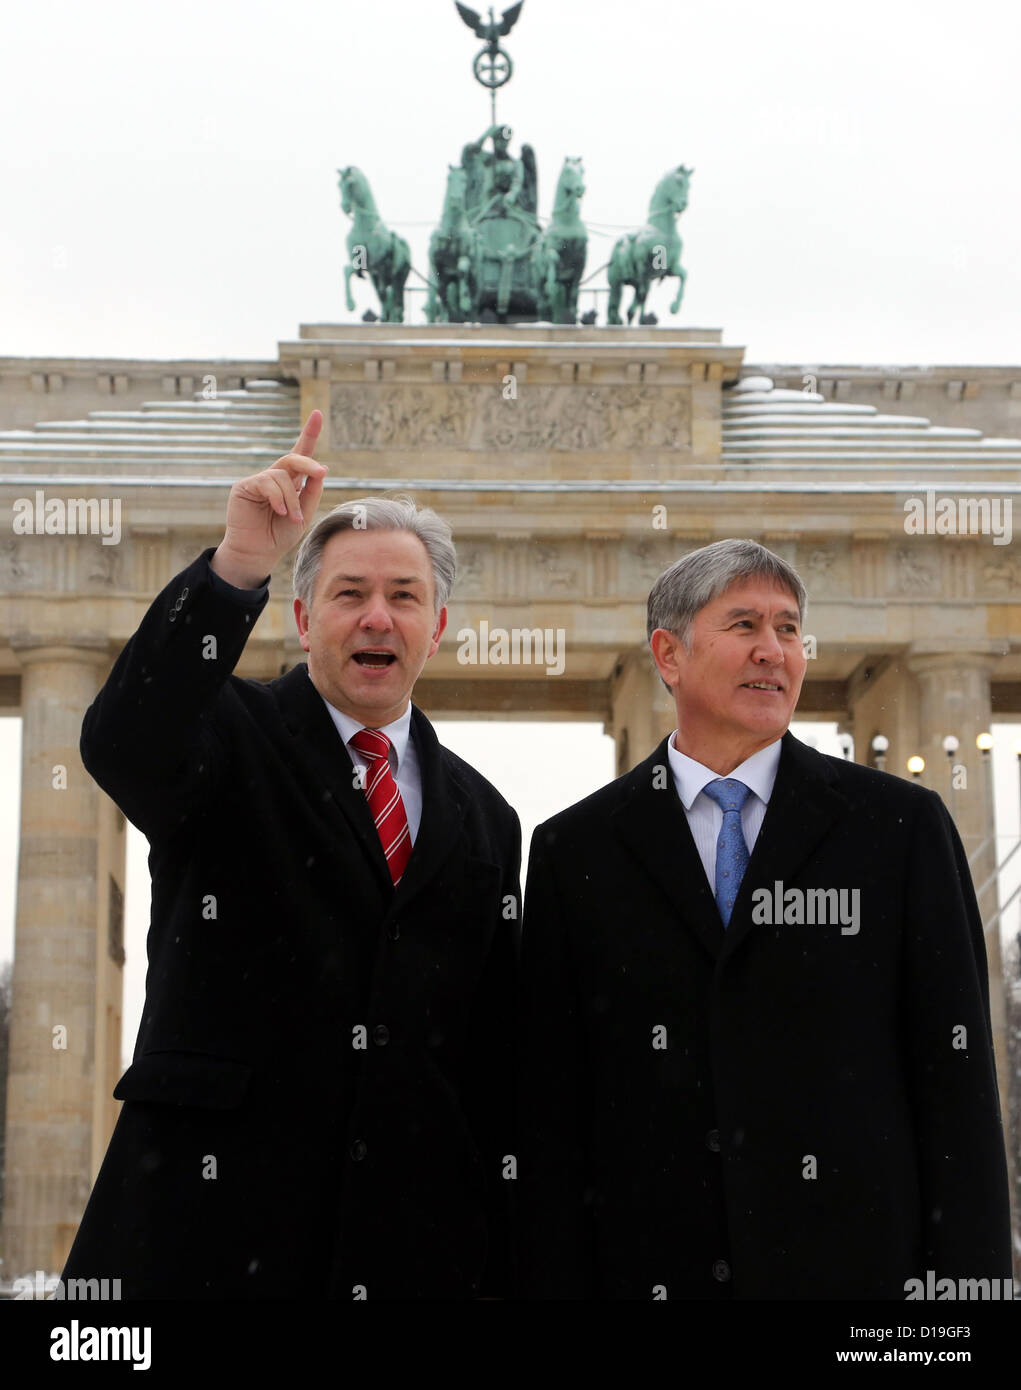 Mayor of Berlin Klaus Wowereit (L) and President of Kyrgyzstan Almazbek Atambayev stand in front of the Brandenburg Stock Photo